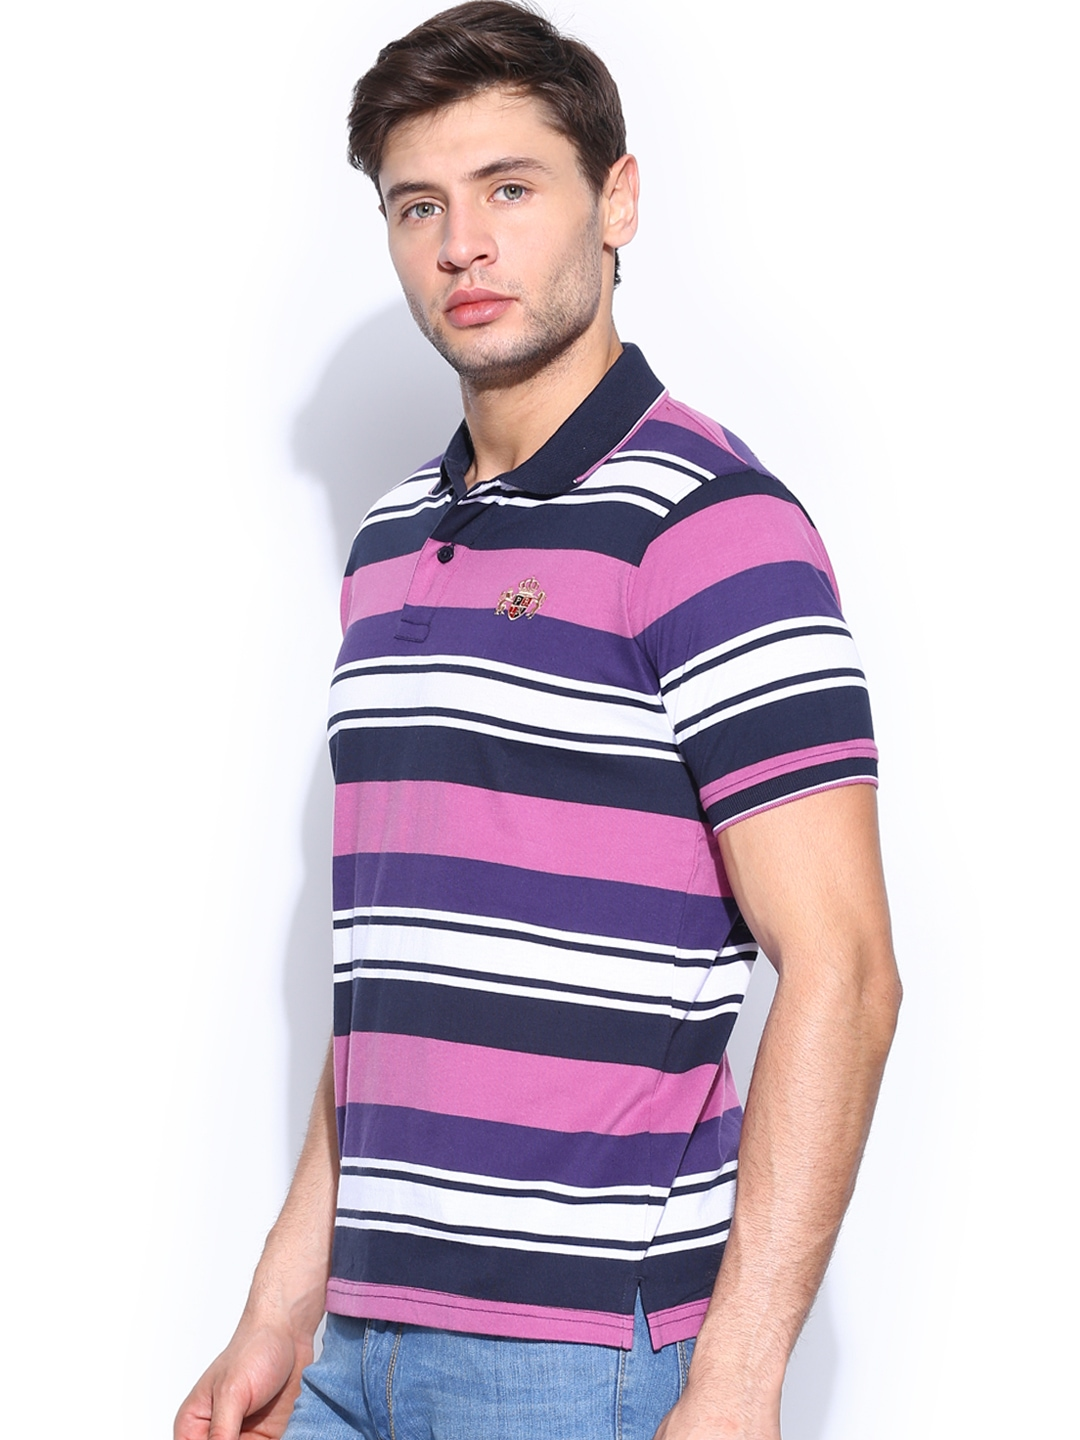 Myntra proline men navy purple striped polo t shirt for Purple and black striped t shirt